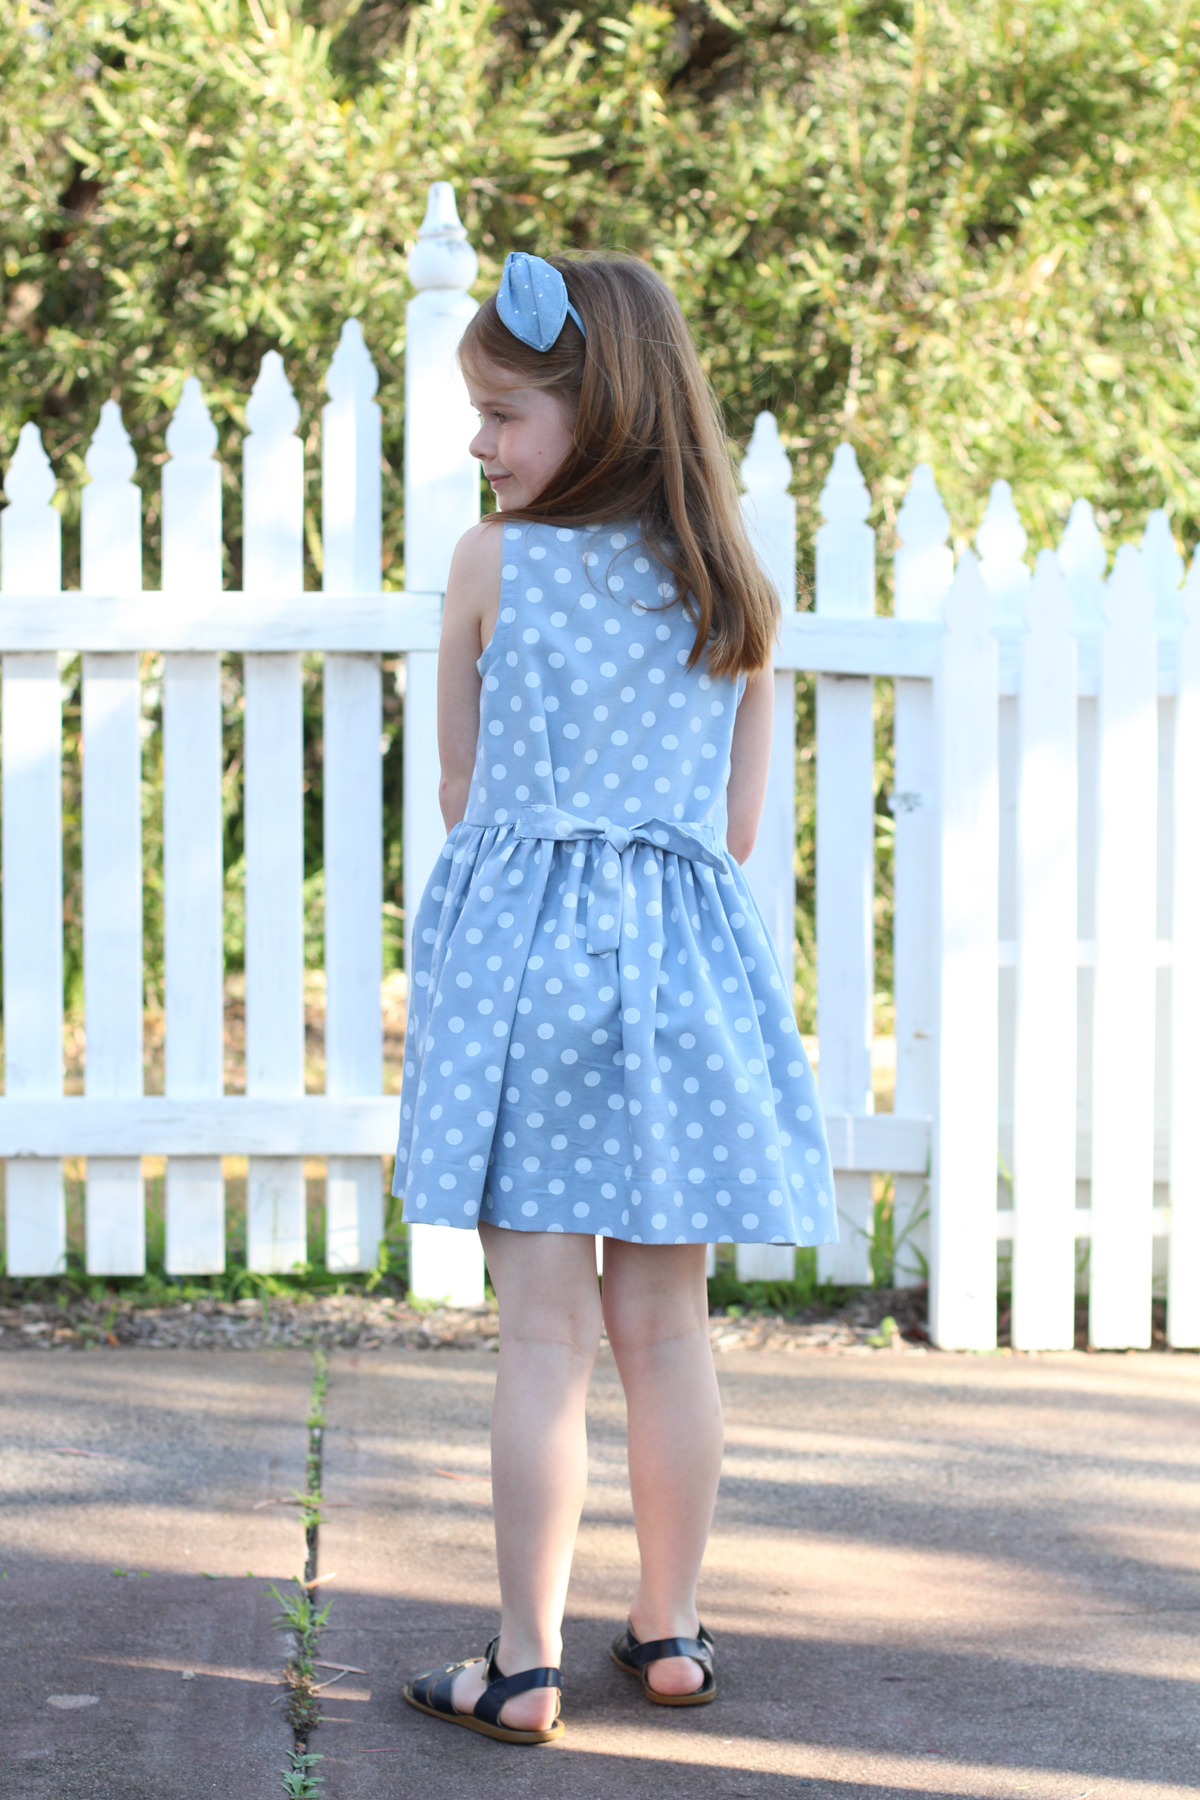 The back of the Mini Darling Ranges dress